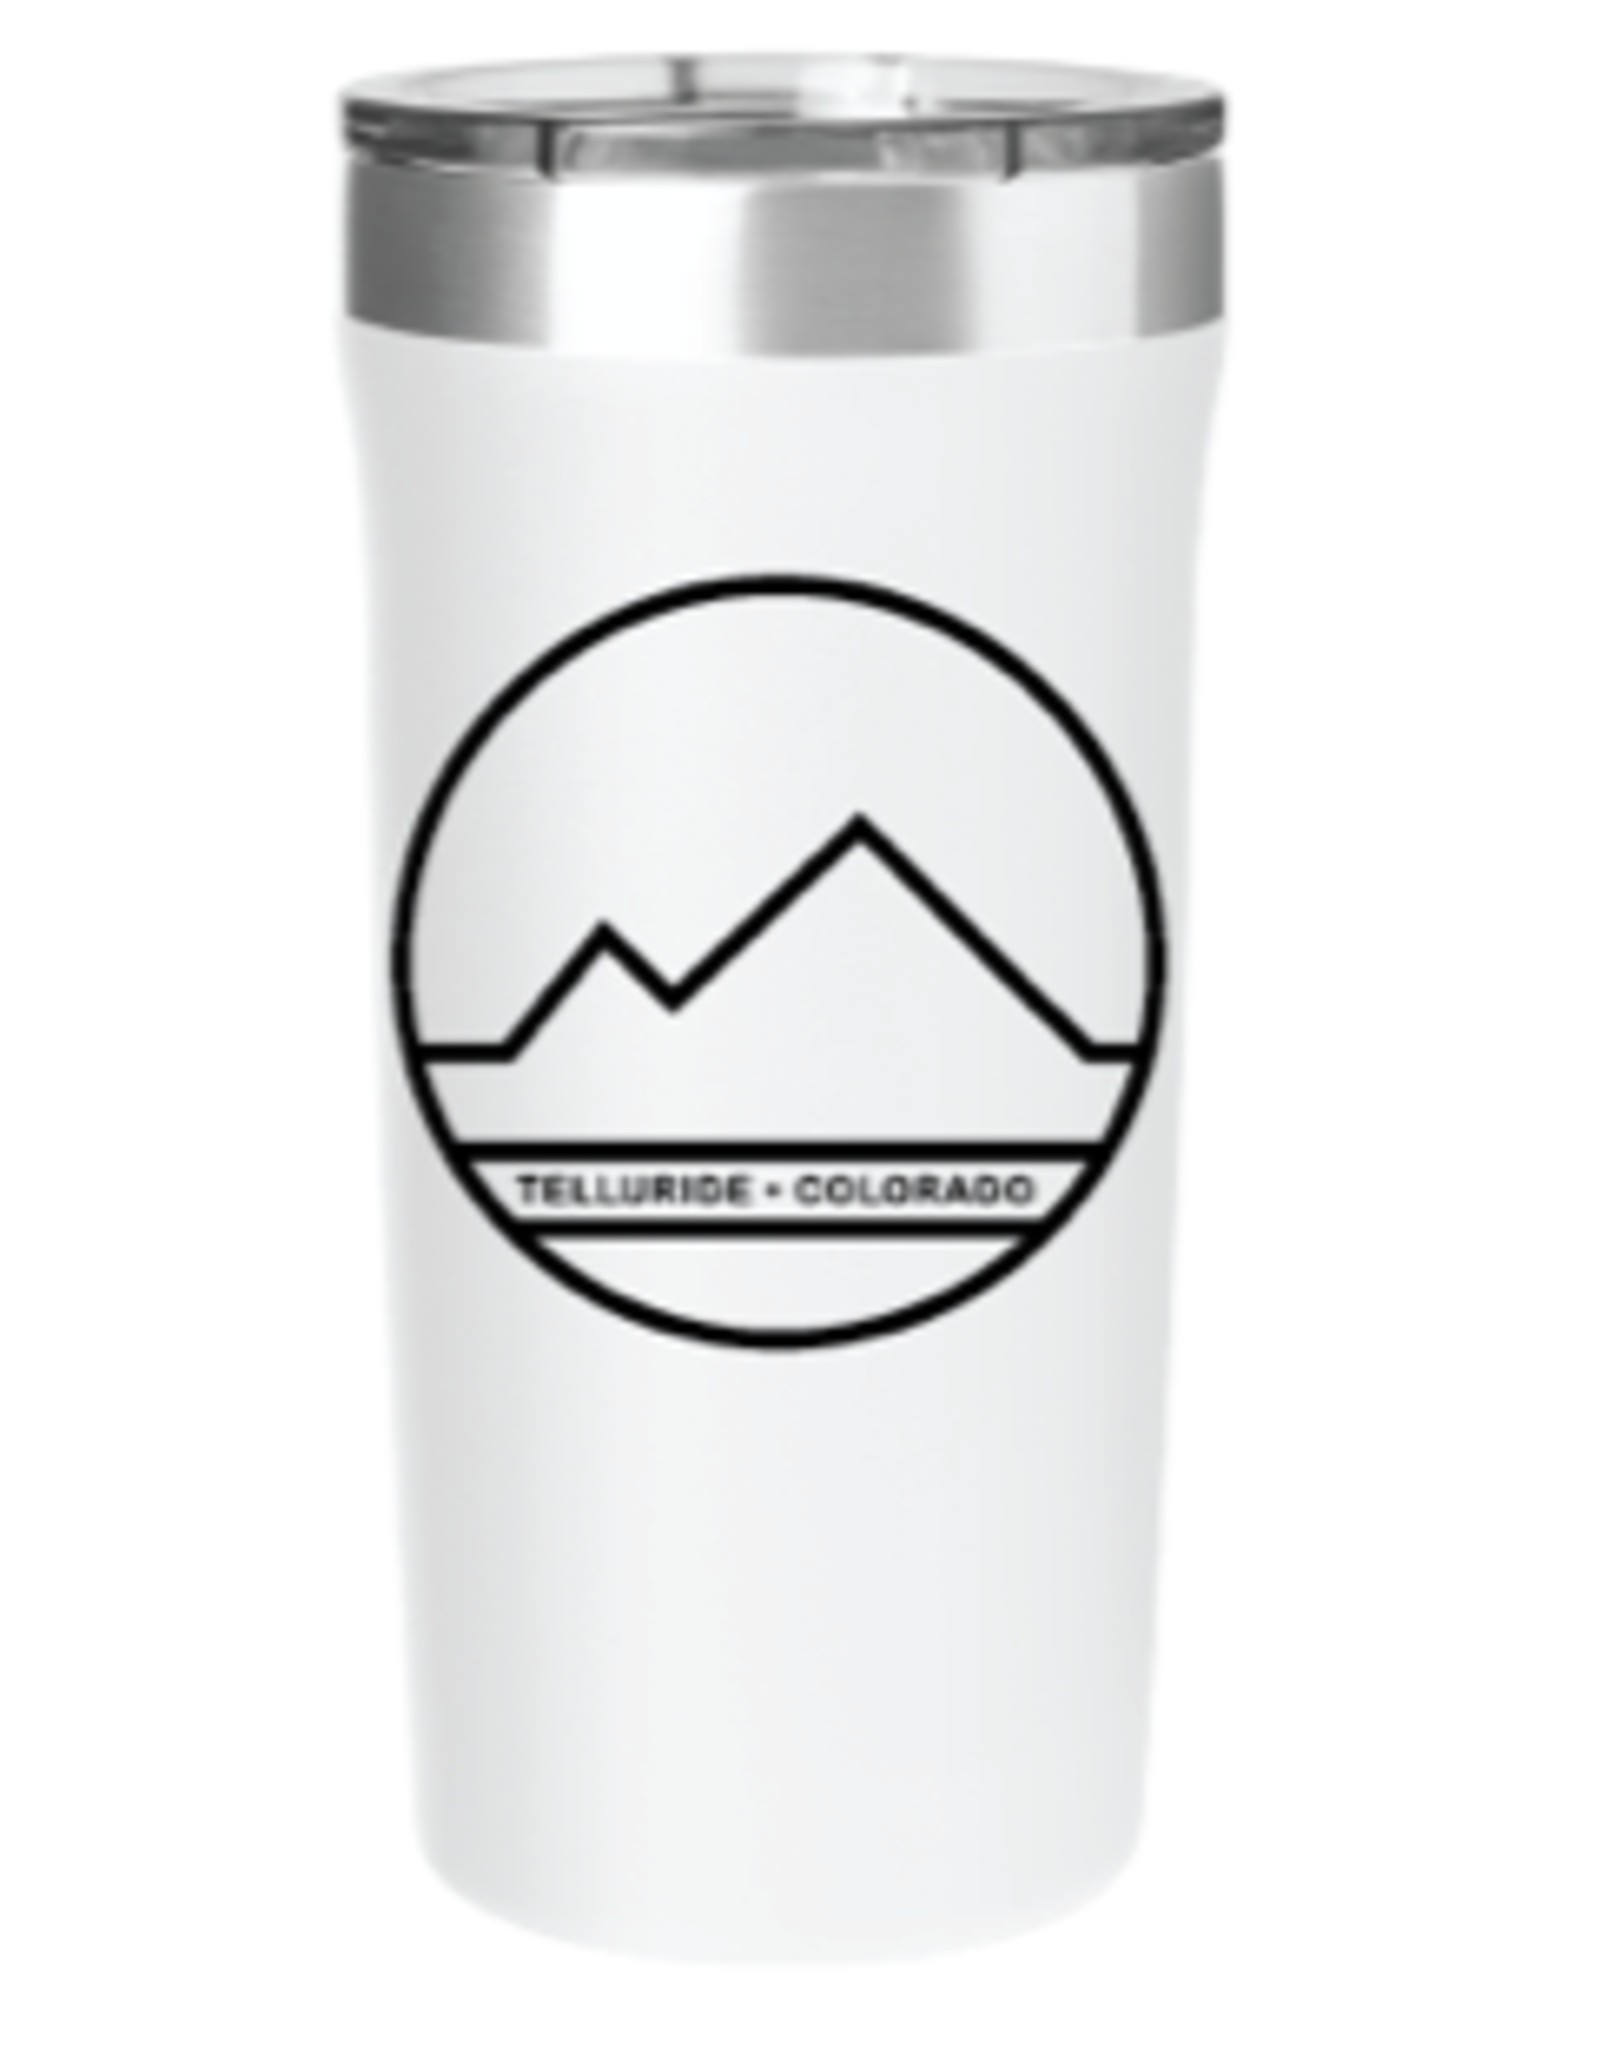 CHARLES PRODUCTS TUMBLER PALMERO 180Z